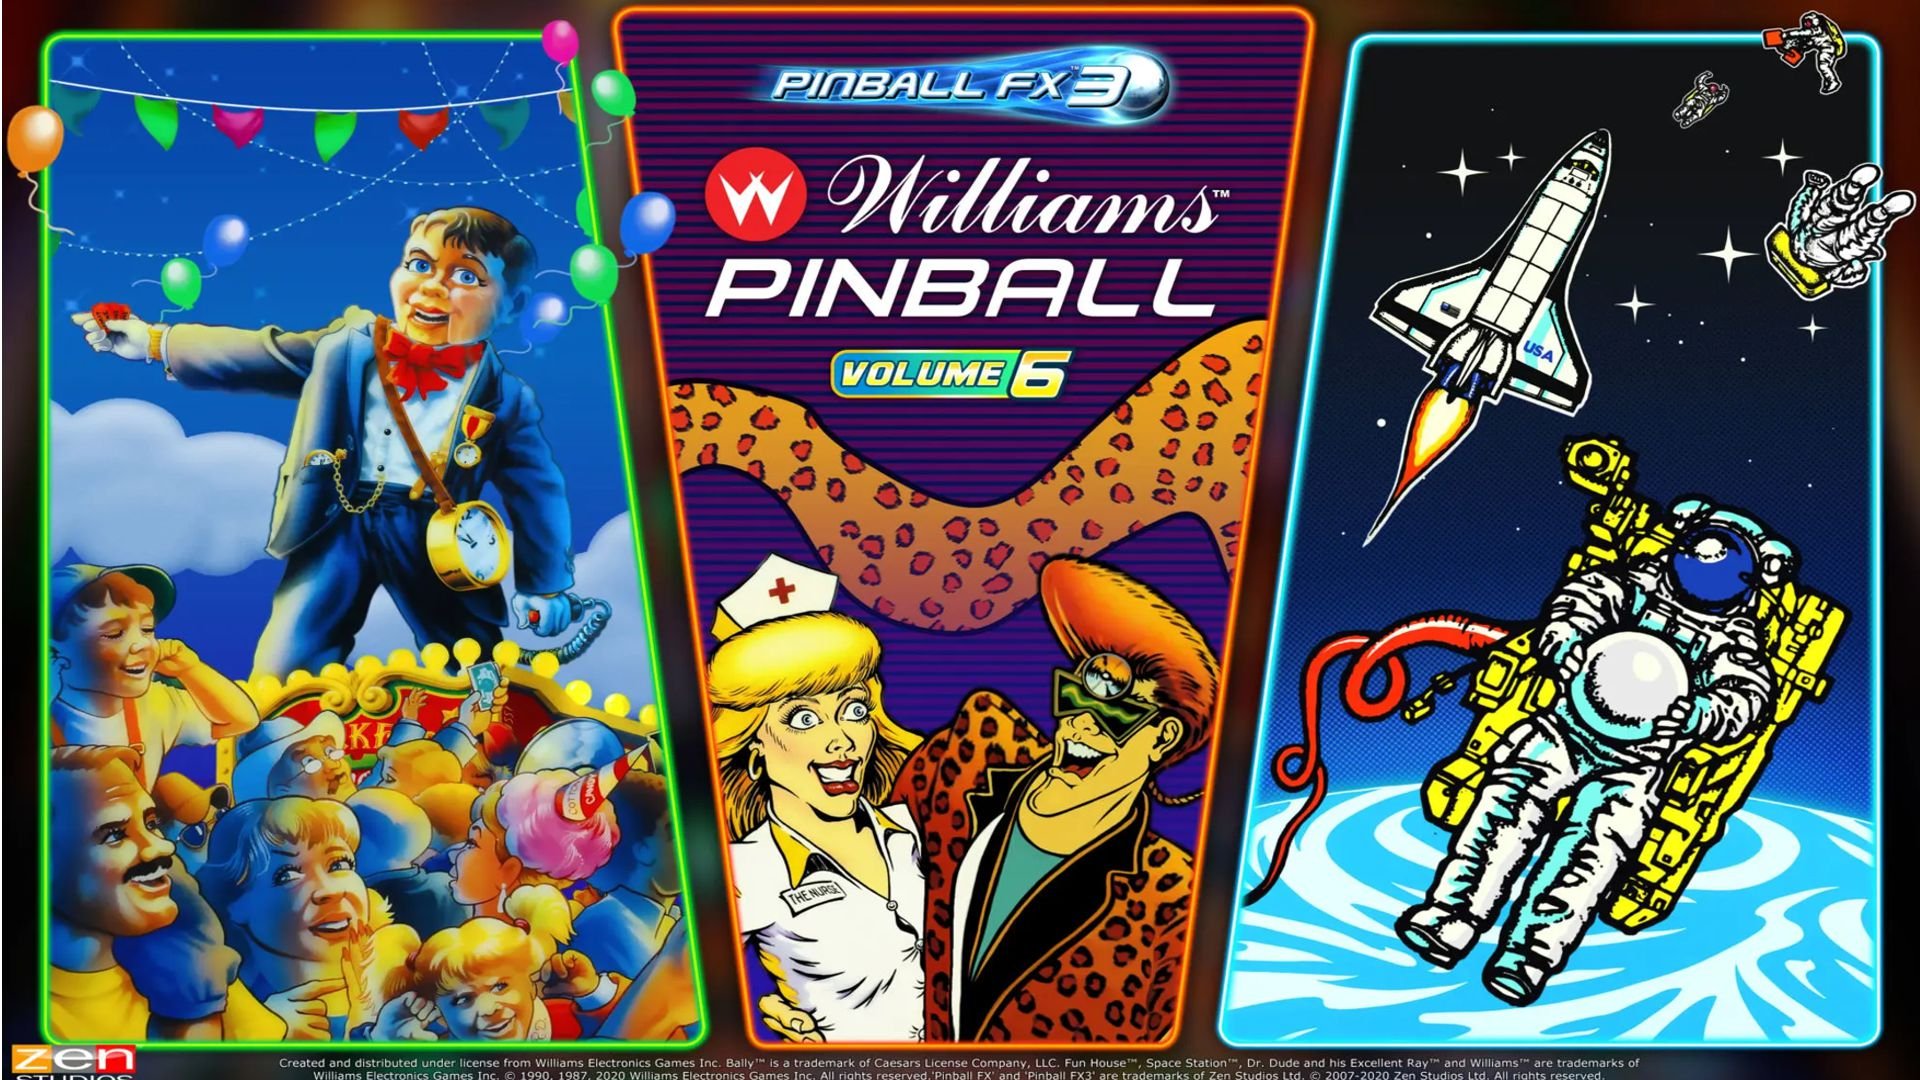 Williams Pinball Volume 6